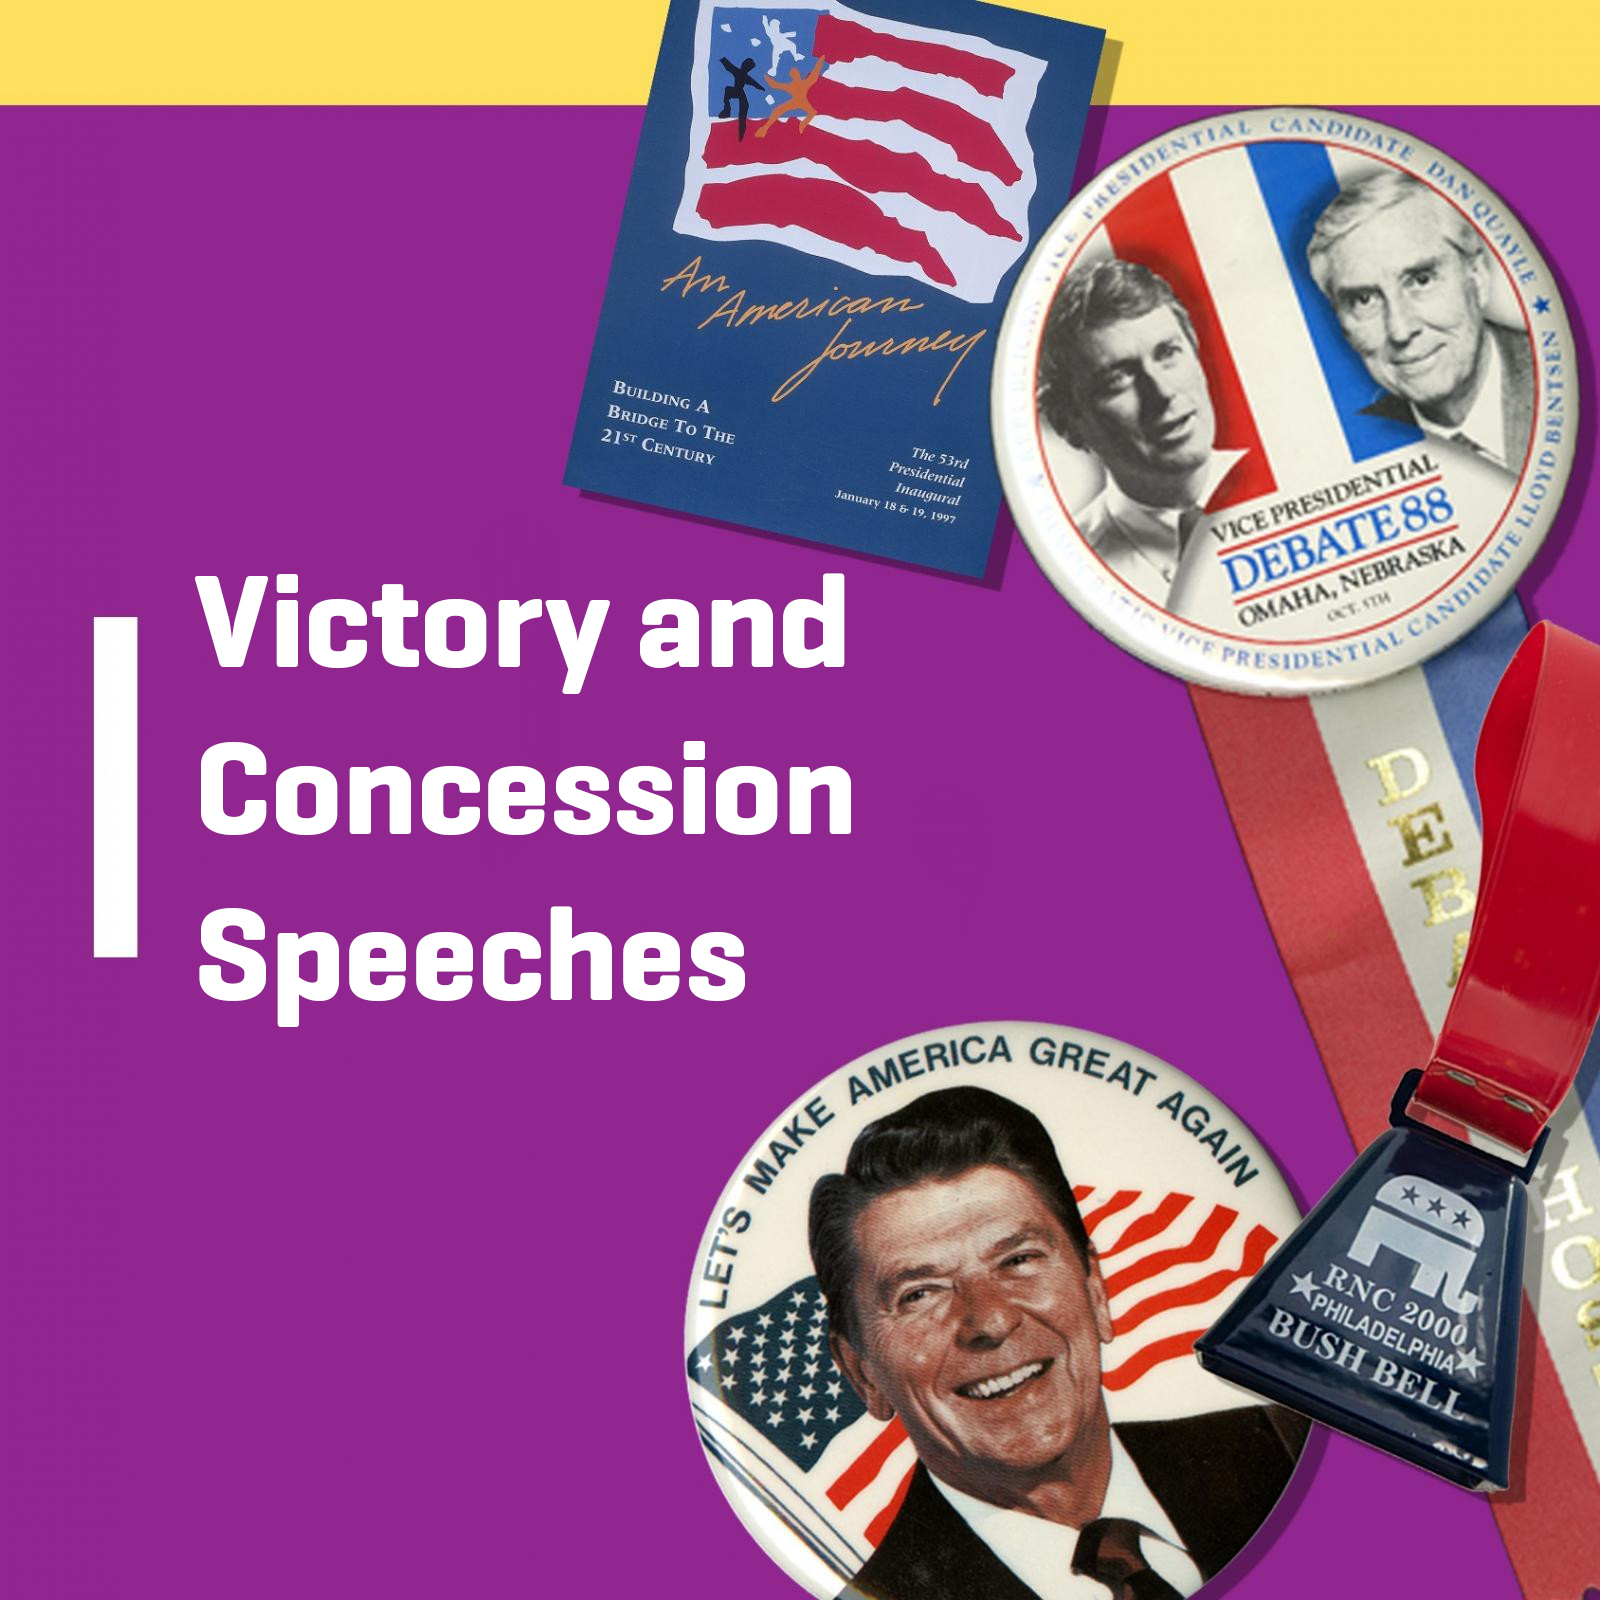 Victory and Concession Speeches graphic